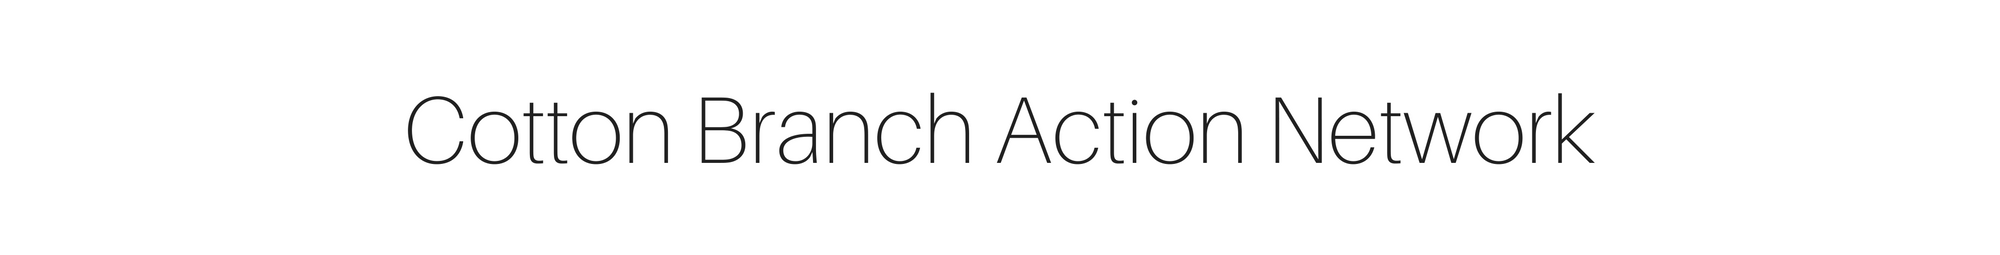 Action_Network.png